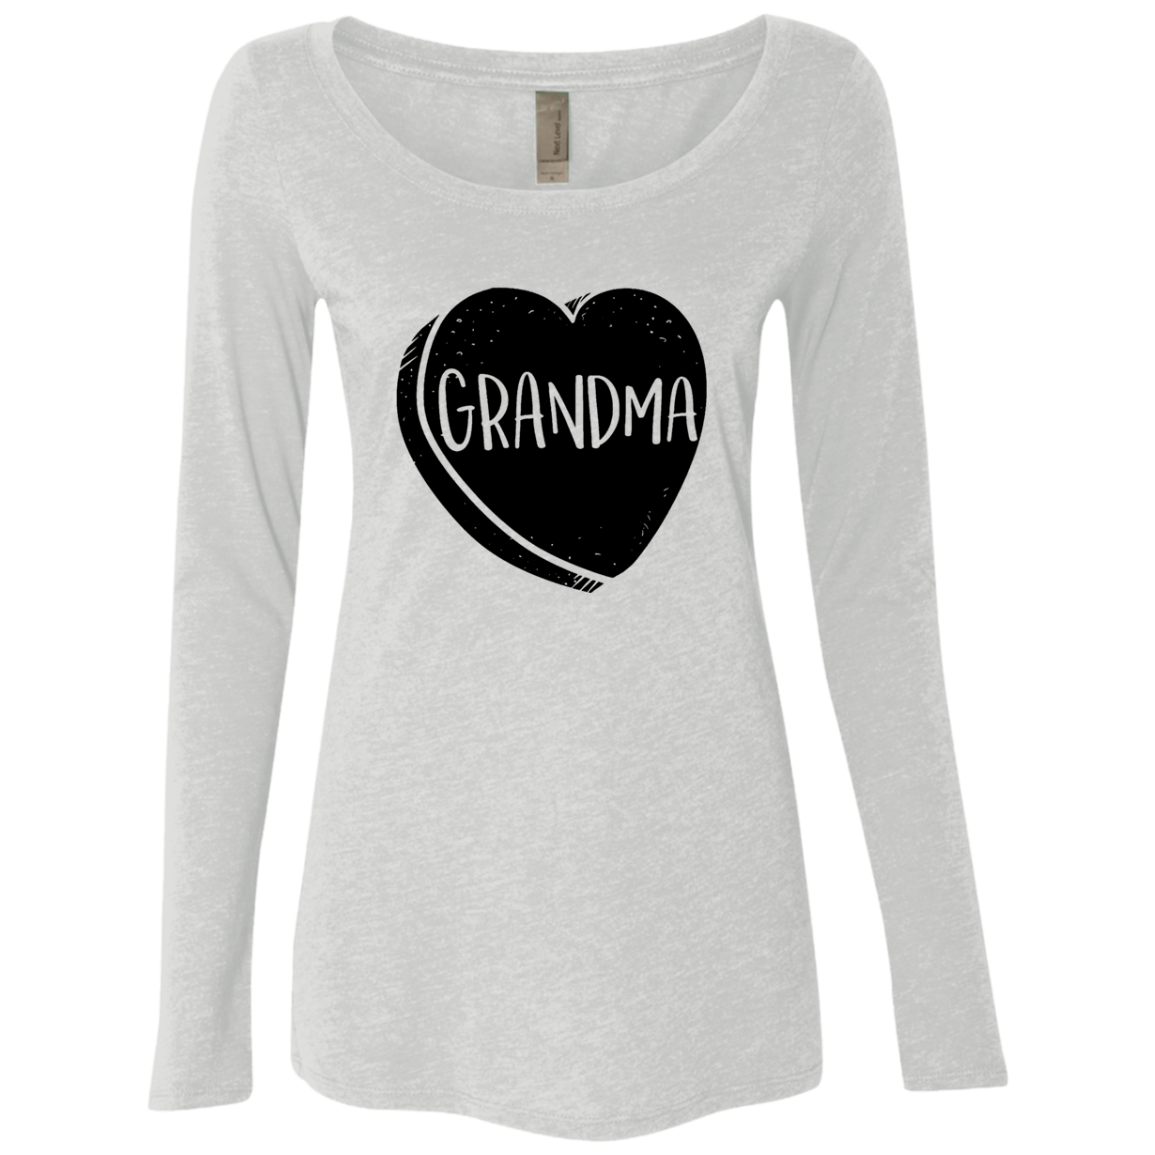 Grandma Women's Long Sleeve Tee